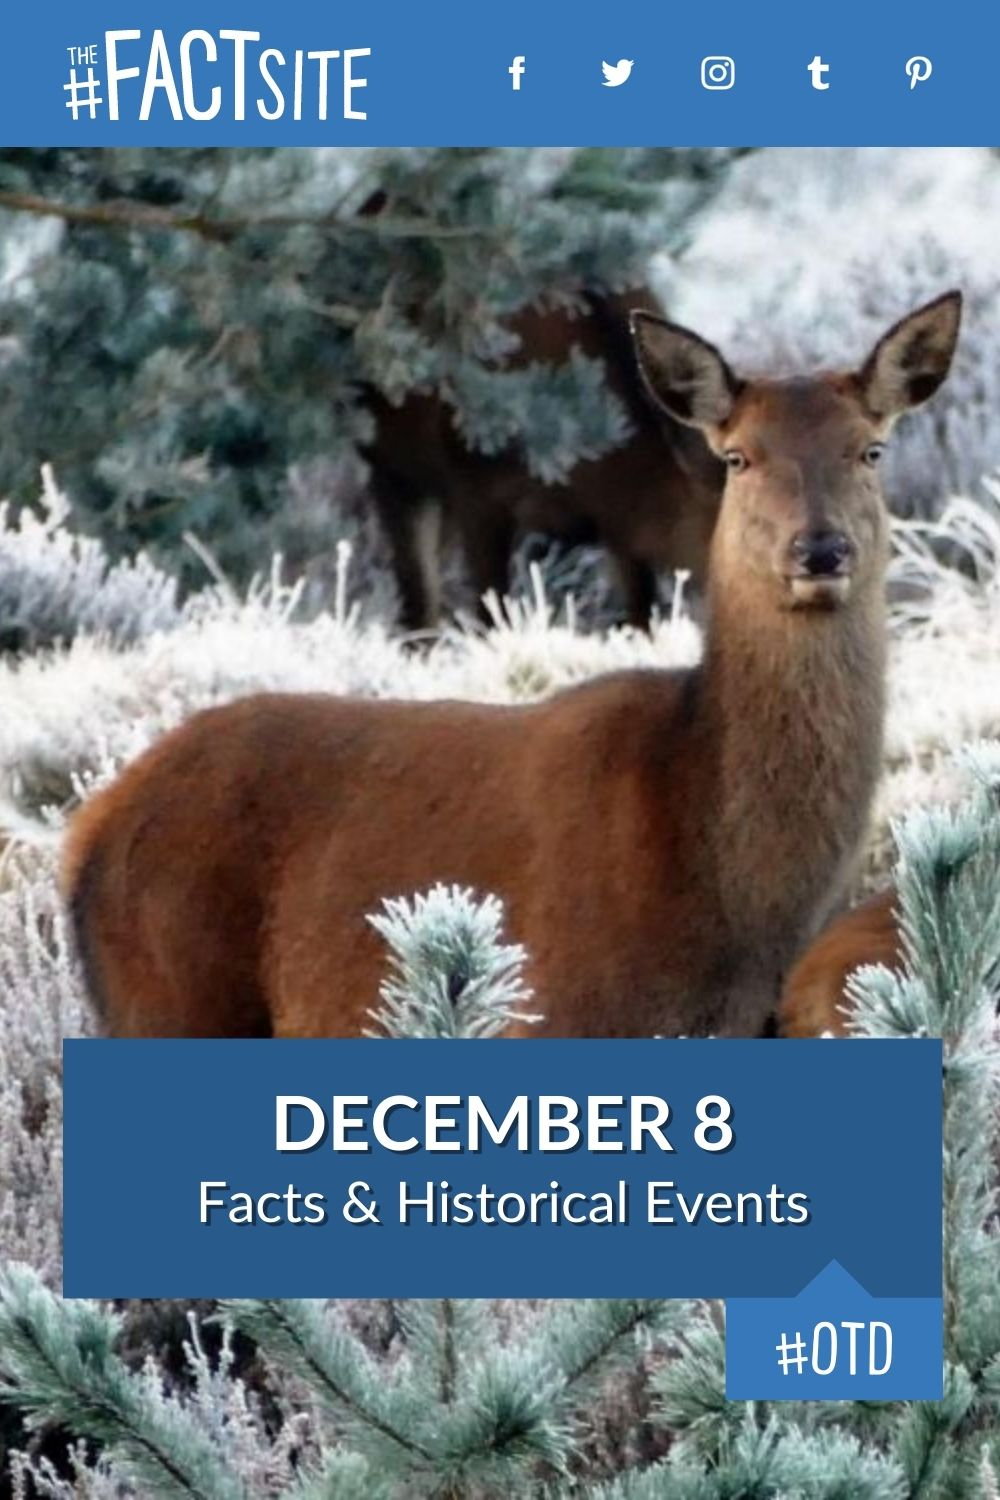 Facts & Historic Events That Happened on December 8